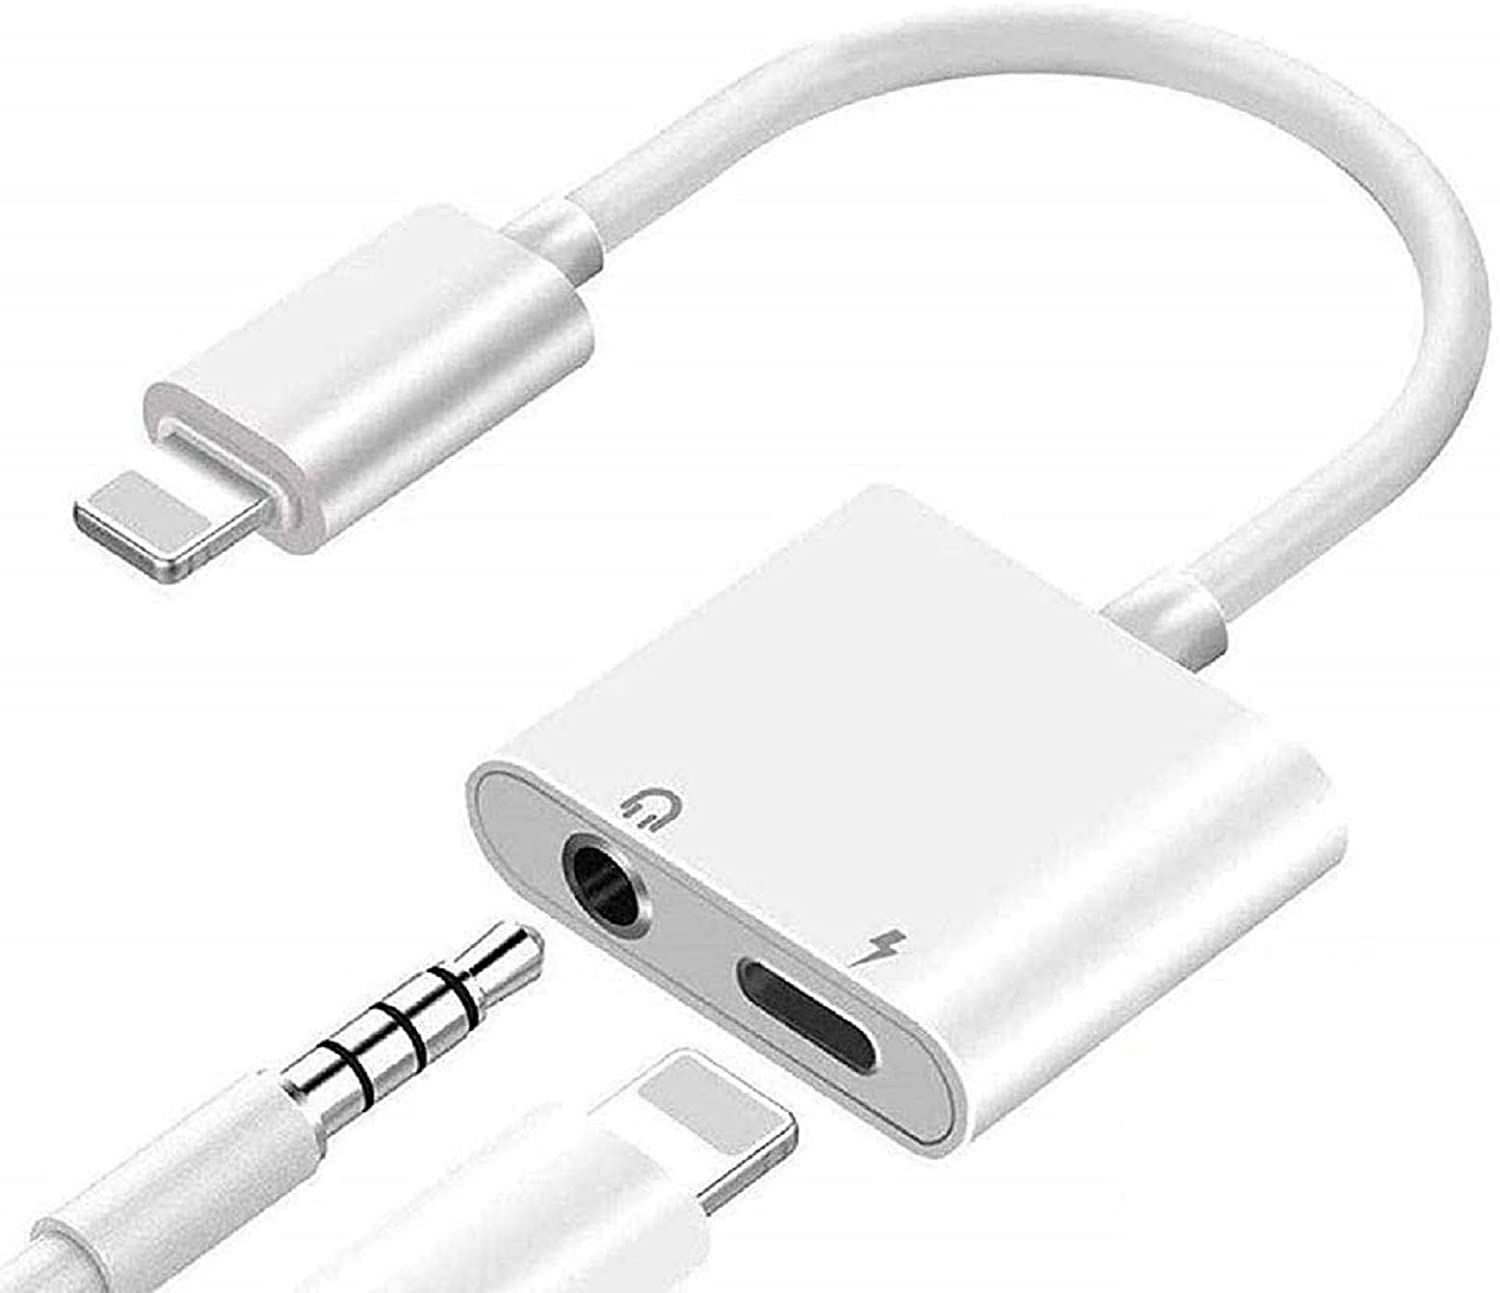 [Apple MFi Certified] Lightning to 3.5mm Headphone Splitter, 2 in 1 Lightning to 3.5mm Headphone Audio & Charger Cable Compatible iPhone 11/XS/XR/X 8 7, iPad, Support Volume Control + Calling + iOS 13